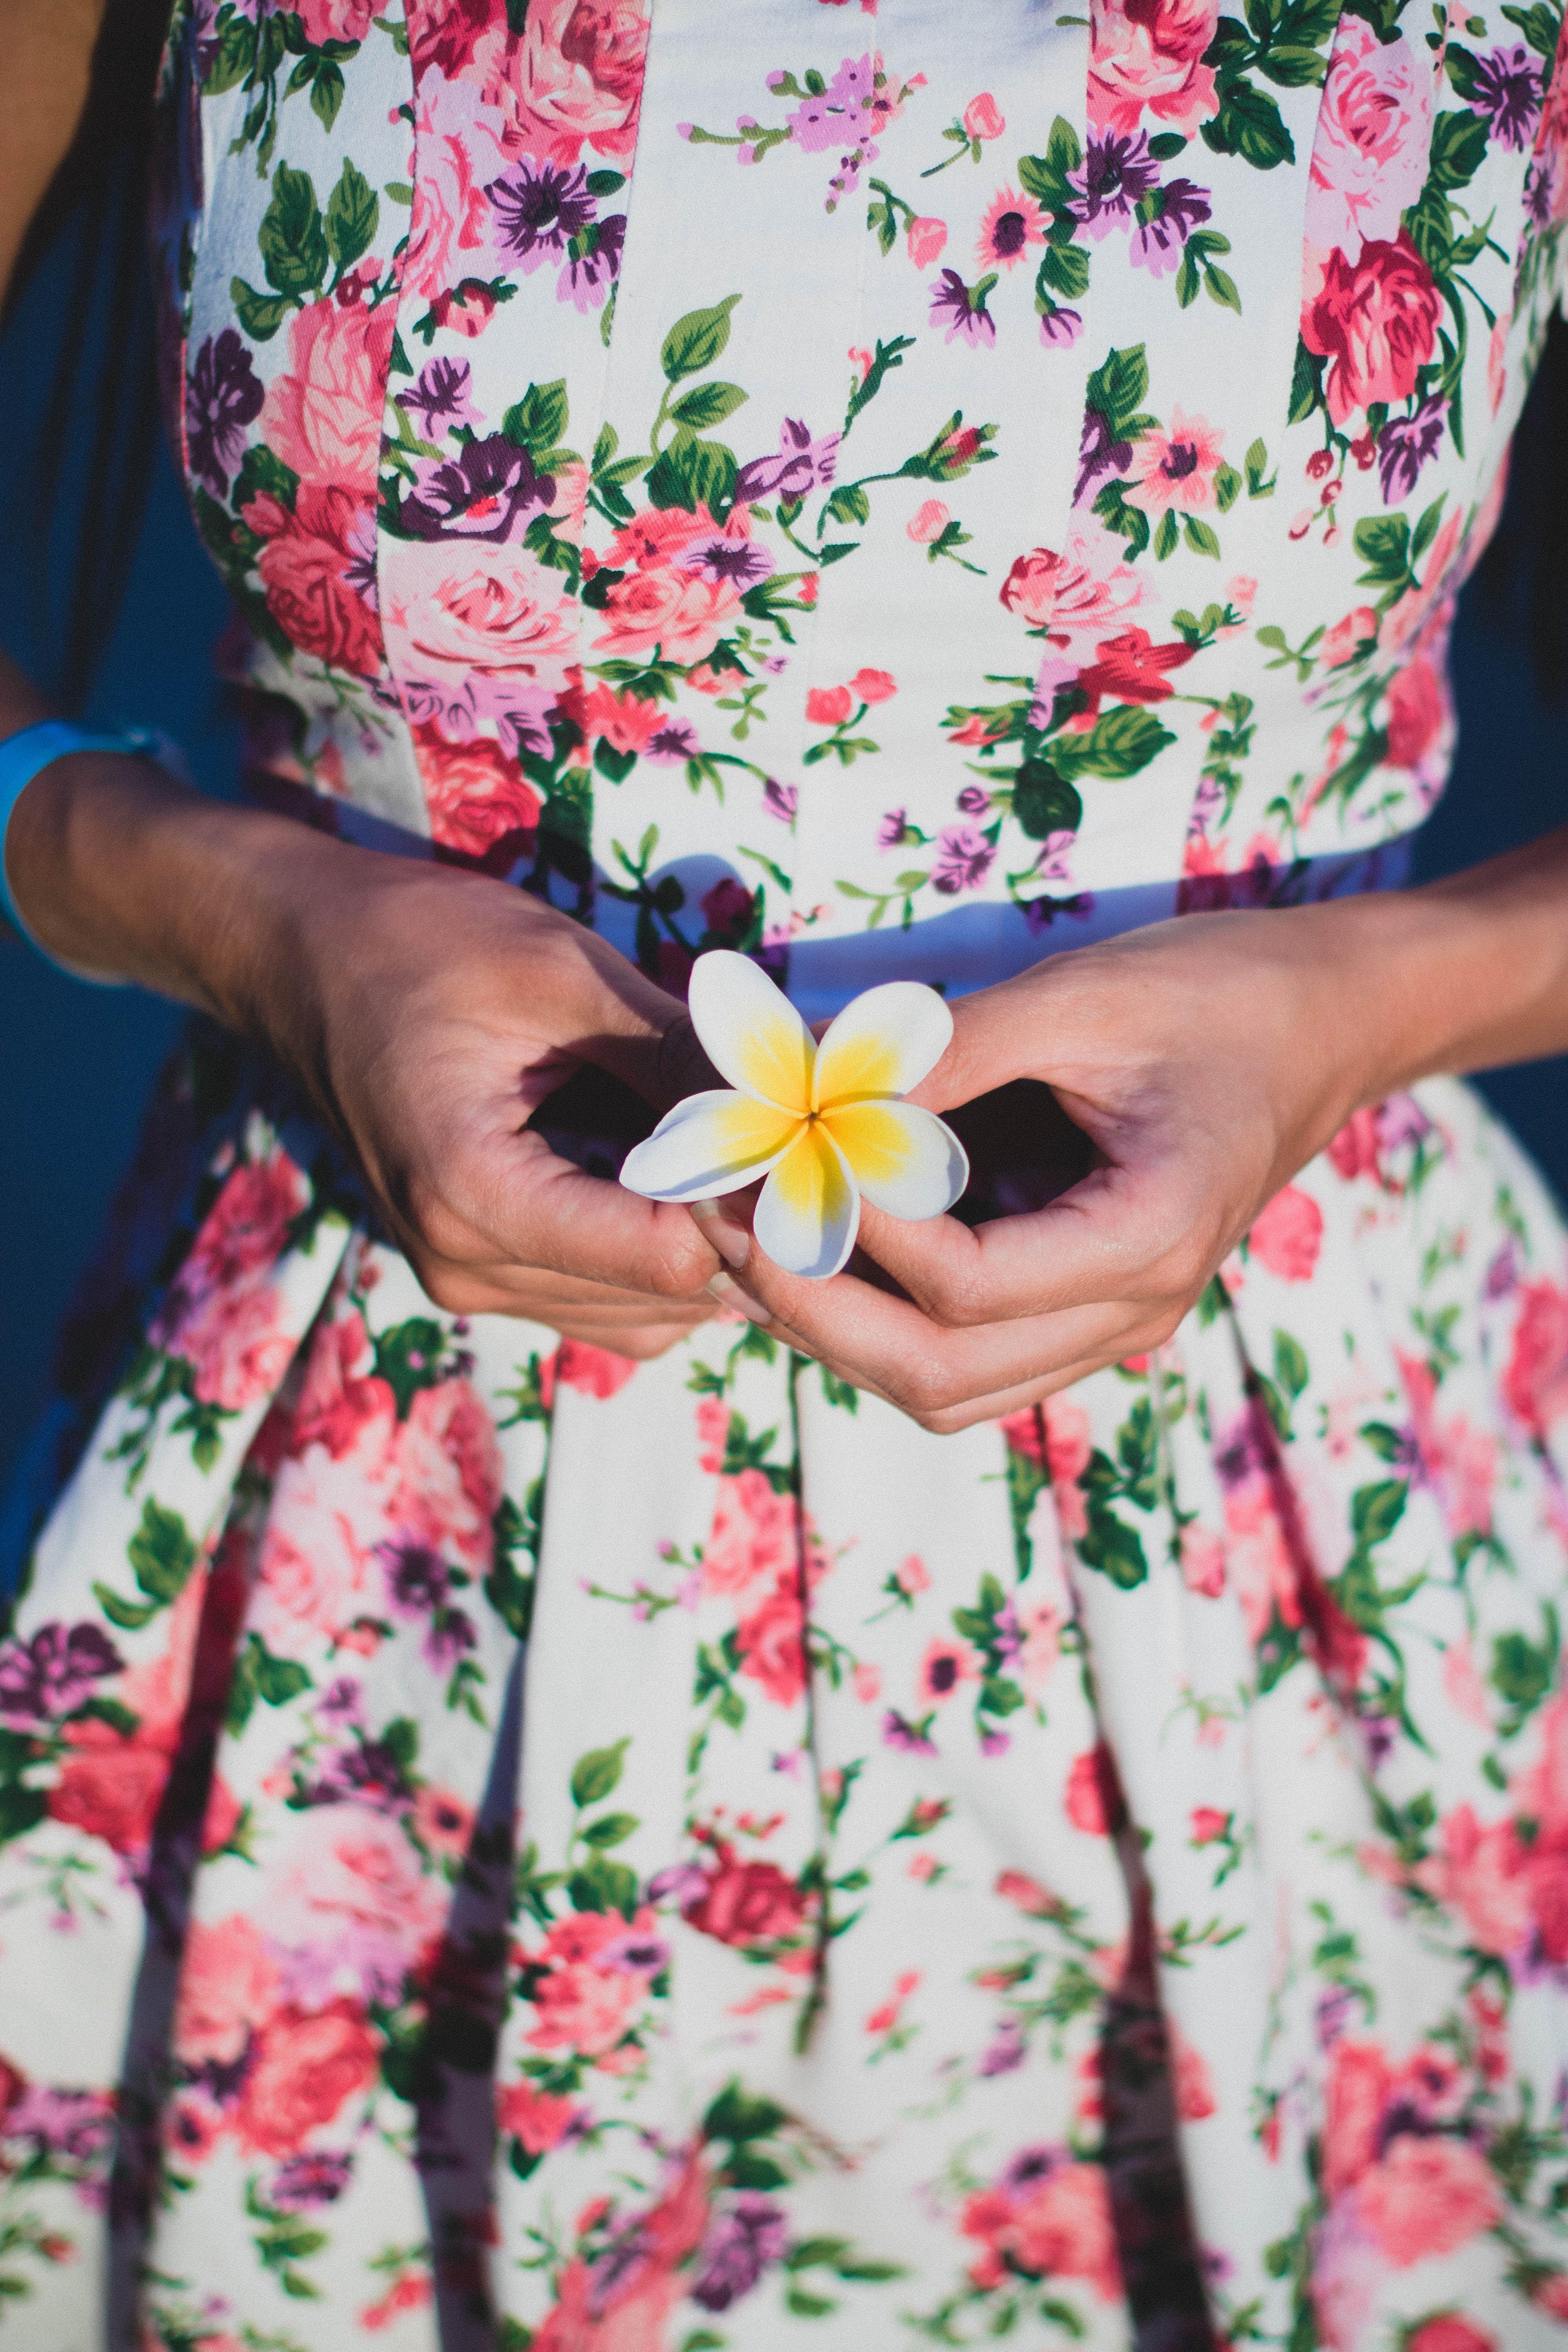 Woman in White and Green Floral Dress Holding Flower, Adult, Love, Wear, Summer, HQ Photo